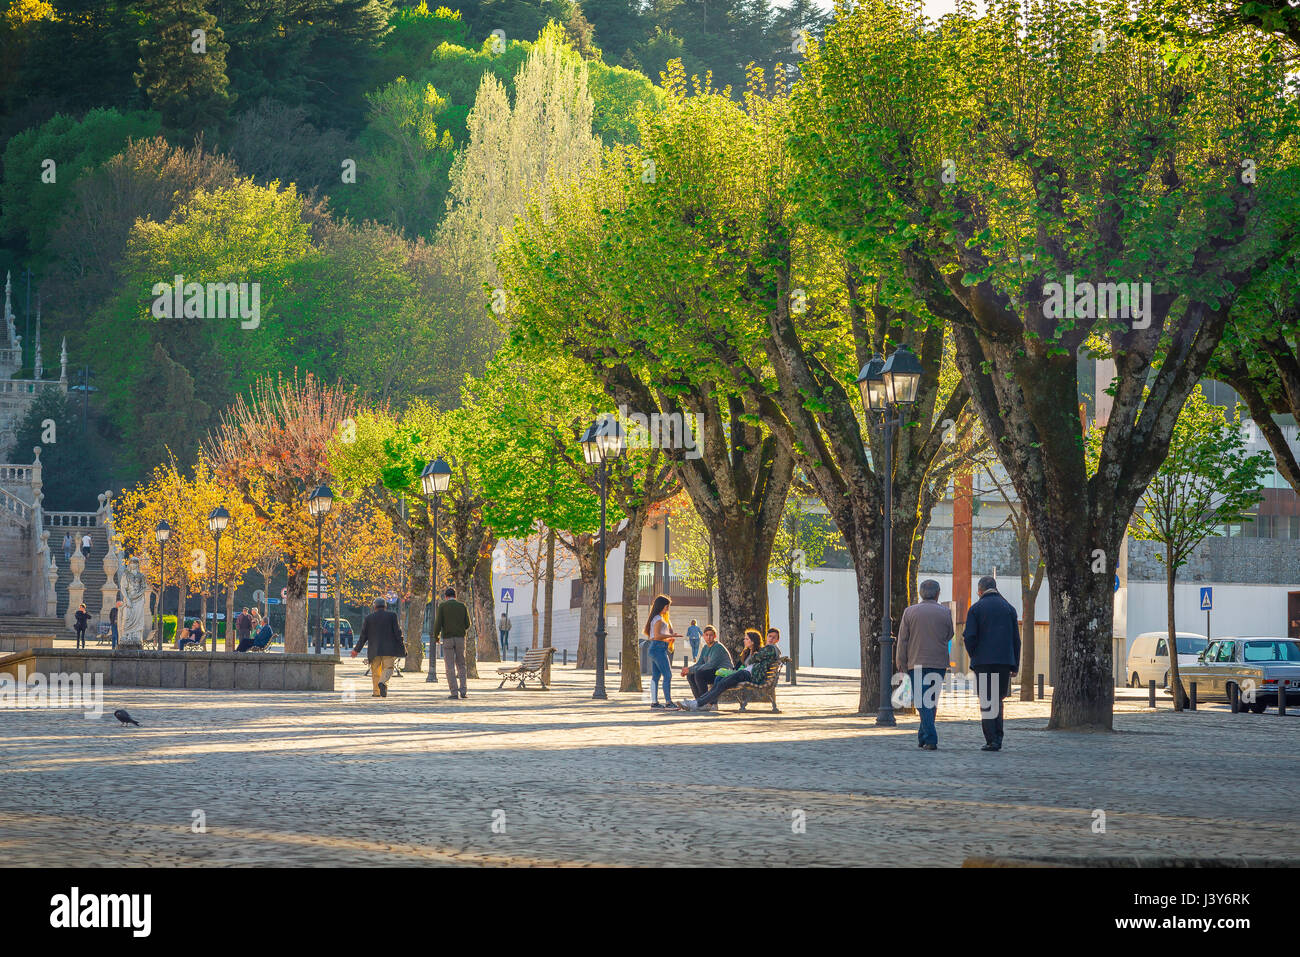 Lamego Portugal center, view along the Avenida Dr A de Sousa on a summer evening in the town of Lamego in Portugal. - Stock Image